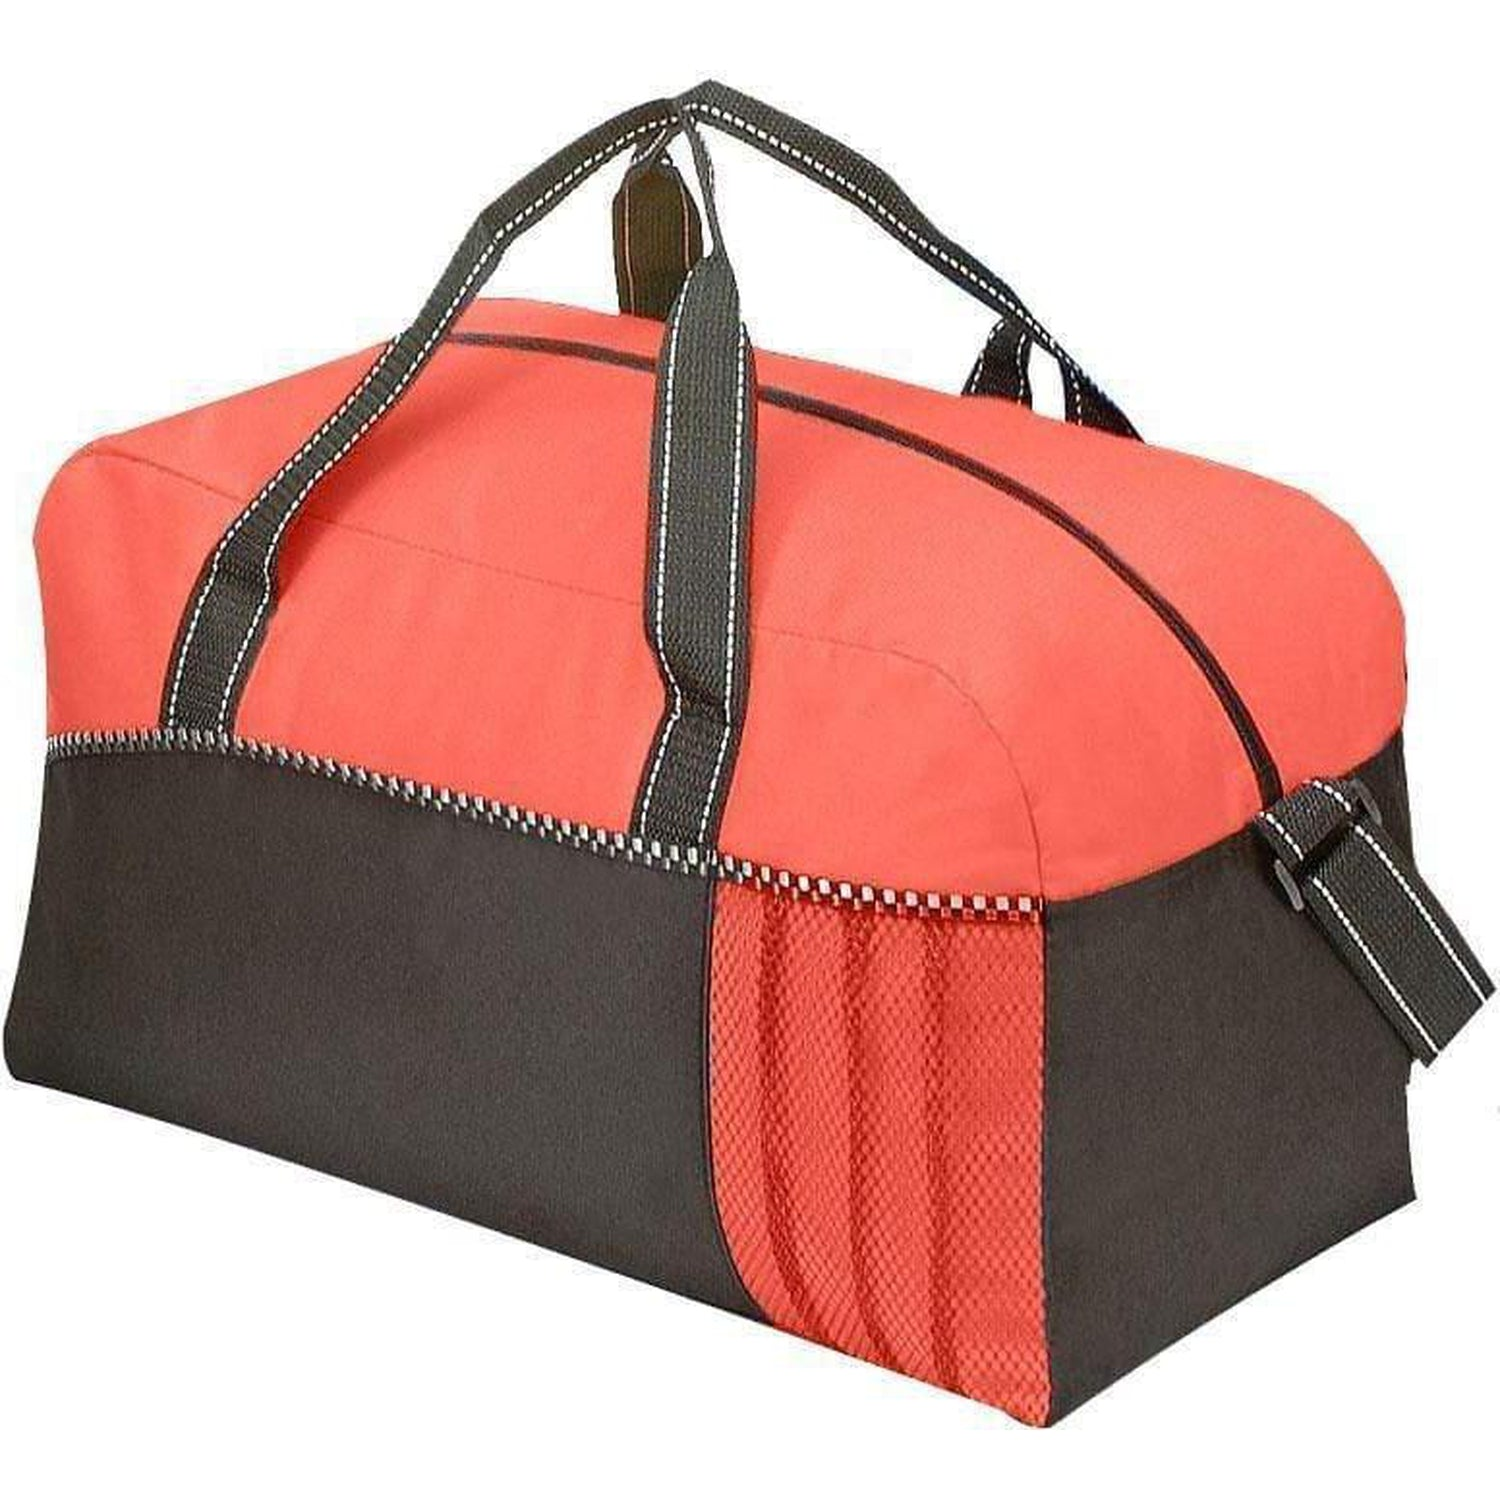 Polyester Wholesale Promotional DUFFLE BAGs - 6077